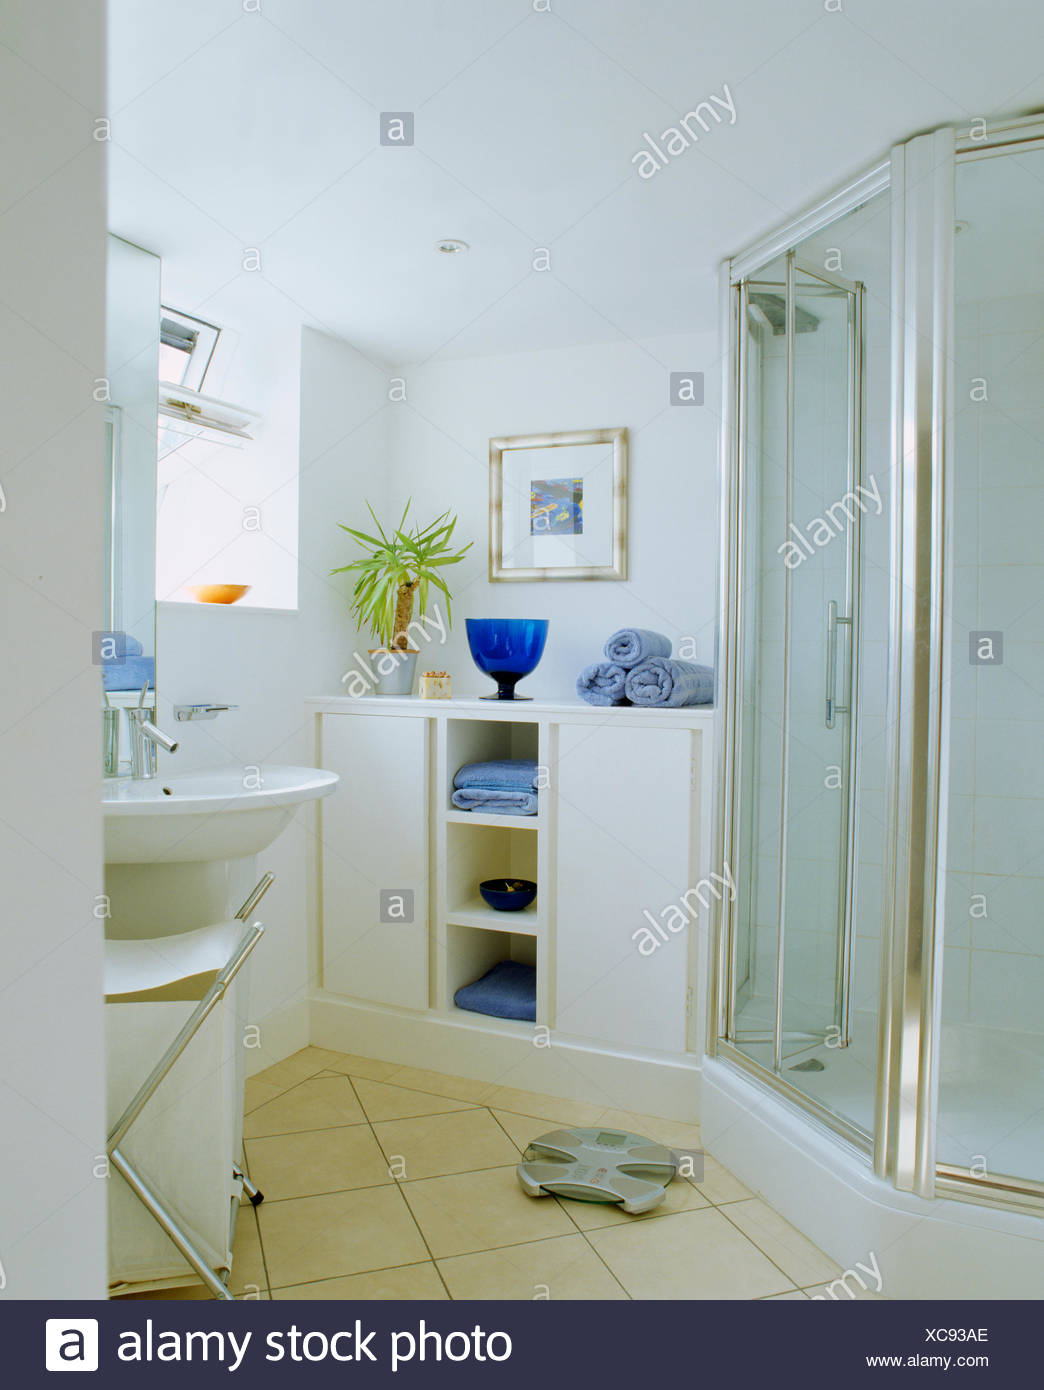 Bathroom Shelving Monochromatic Stock Photos & Bathroom Shelving ...